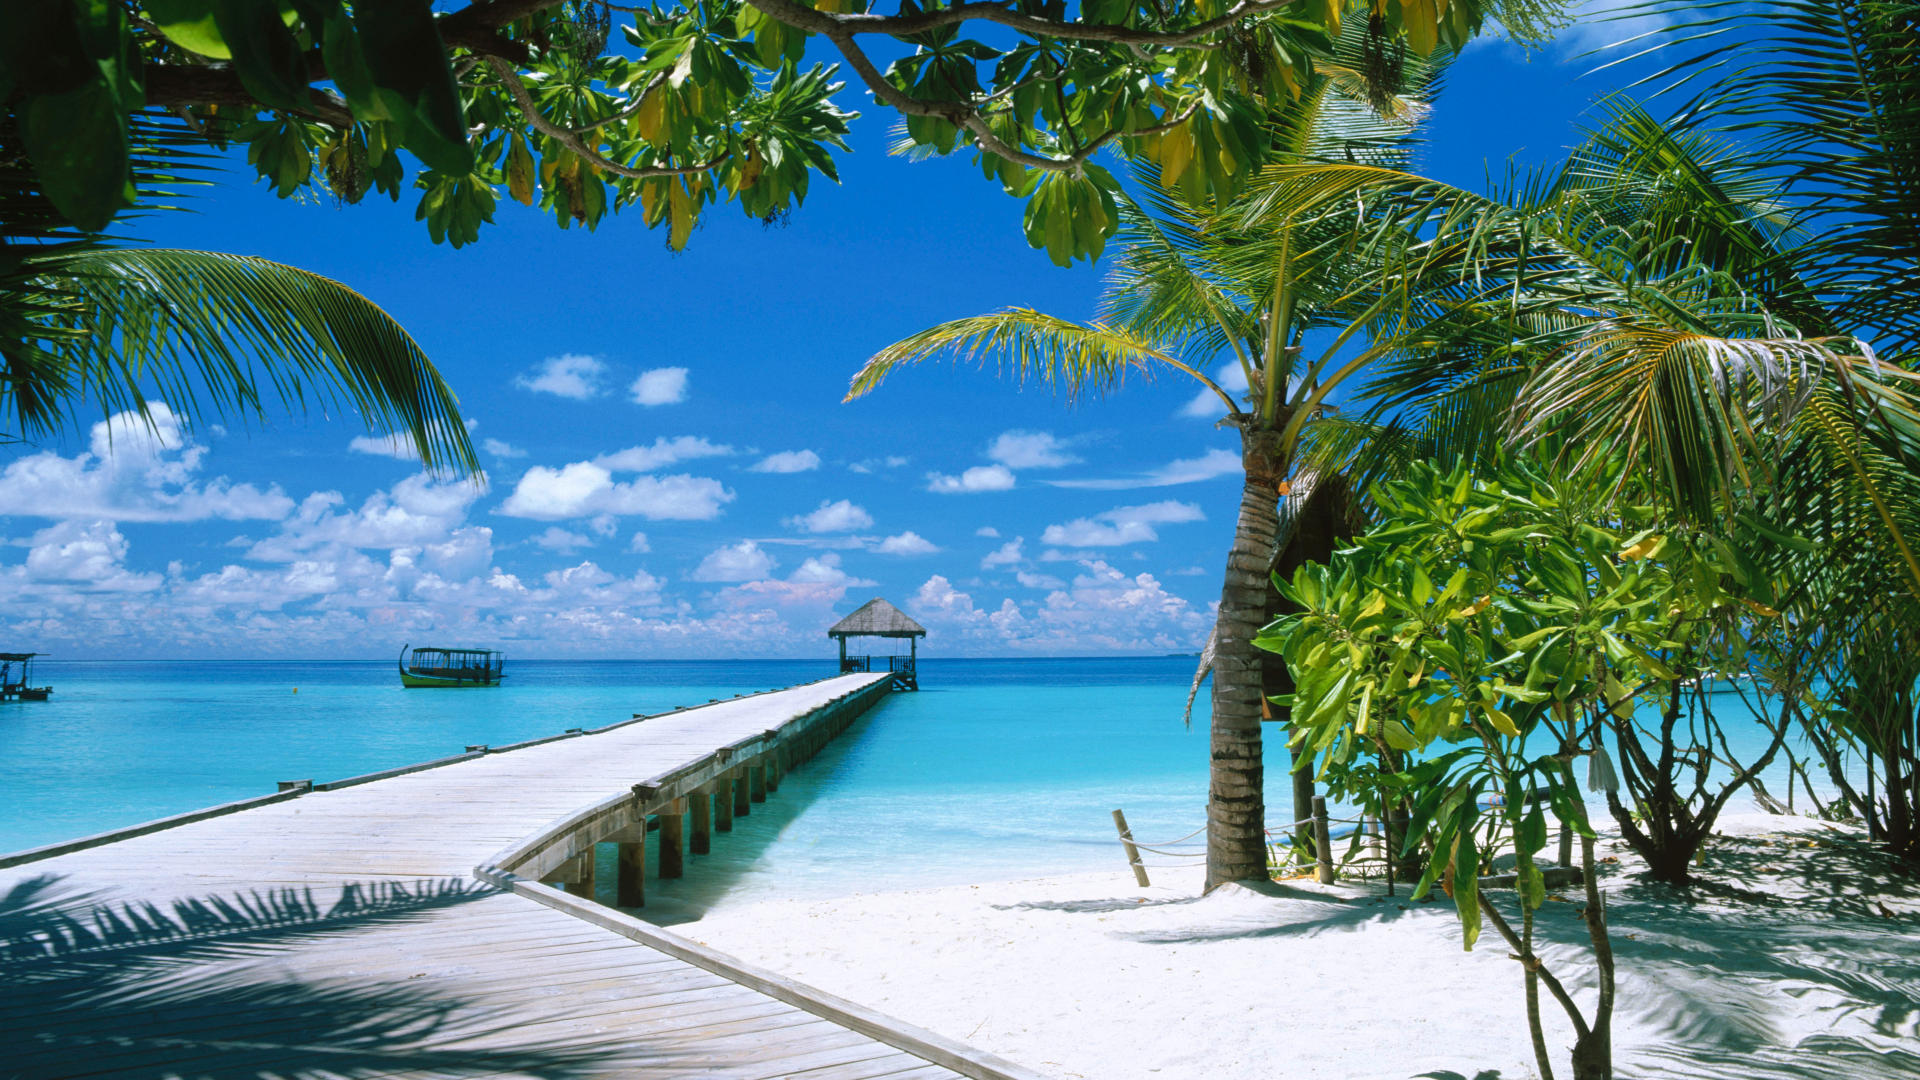 fond ecran plage beach wallpaper maldives HD gratuit - 1920x1080 ...